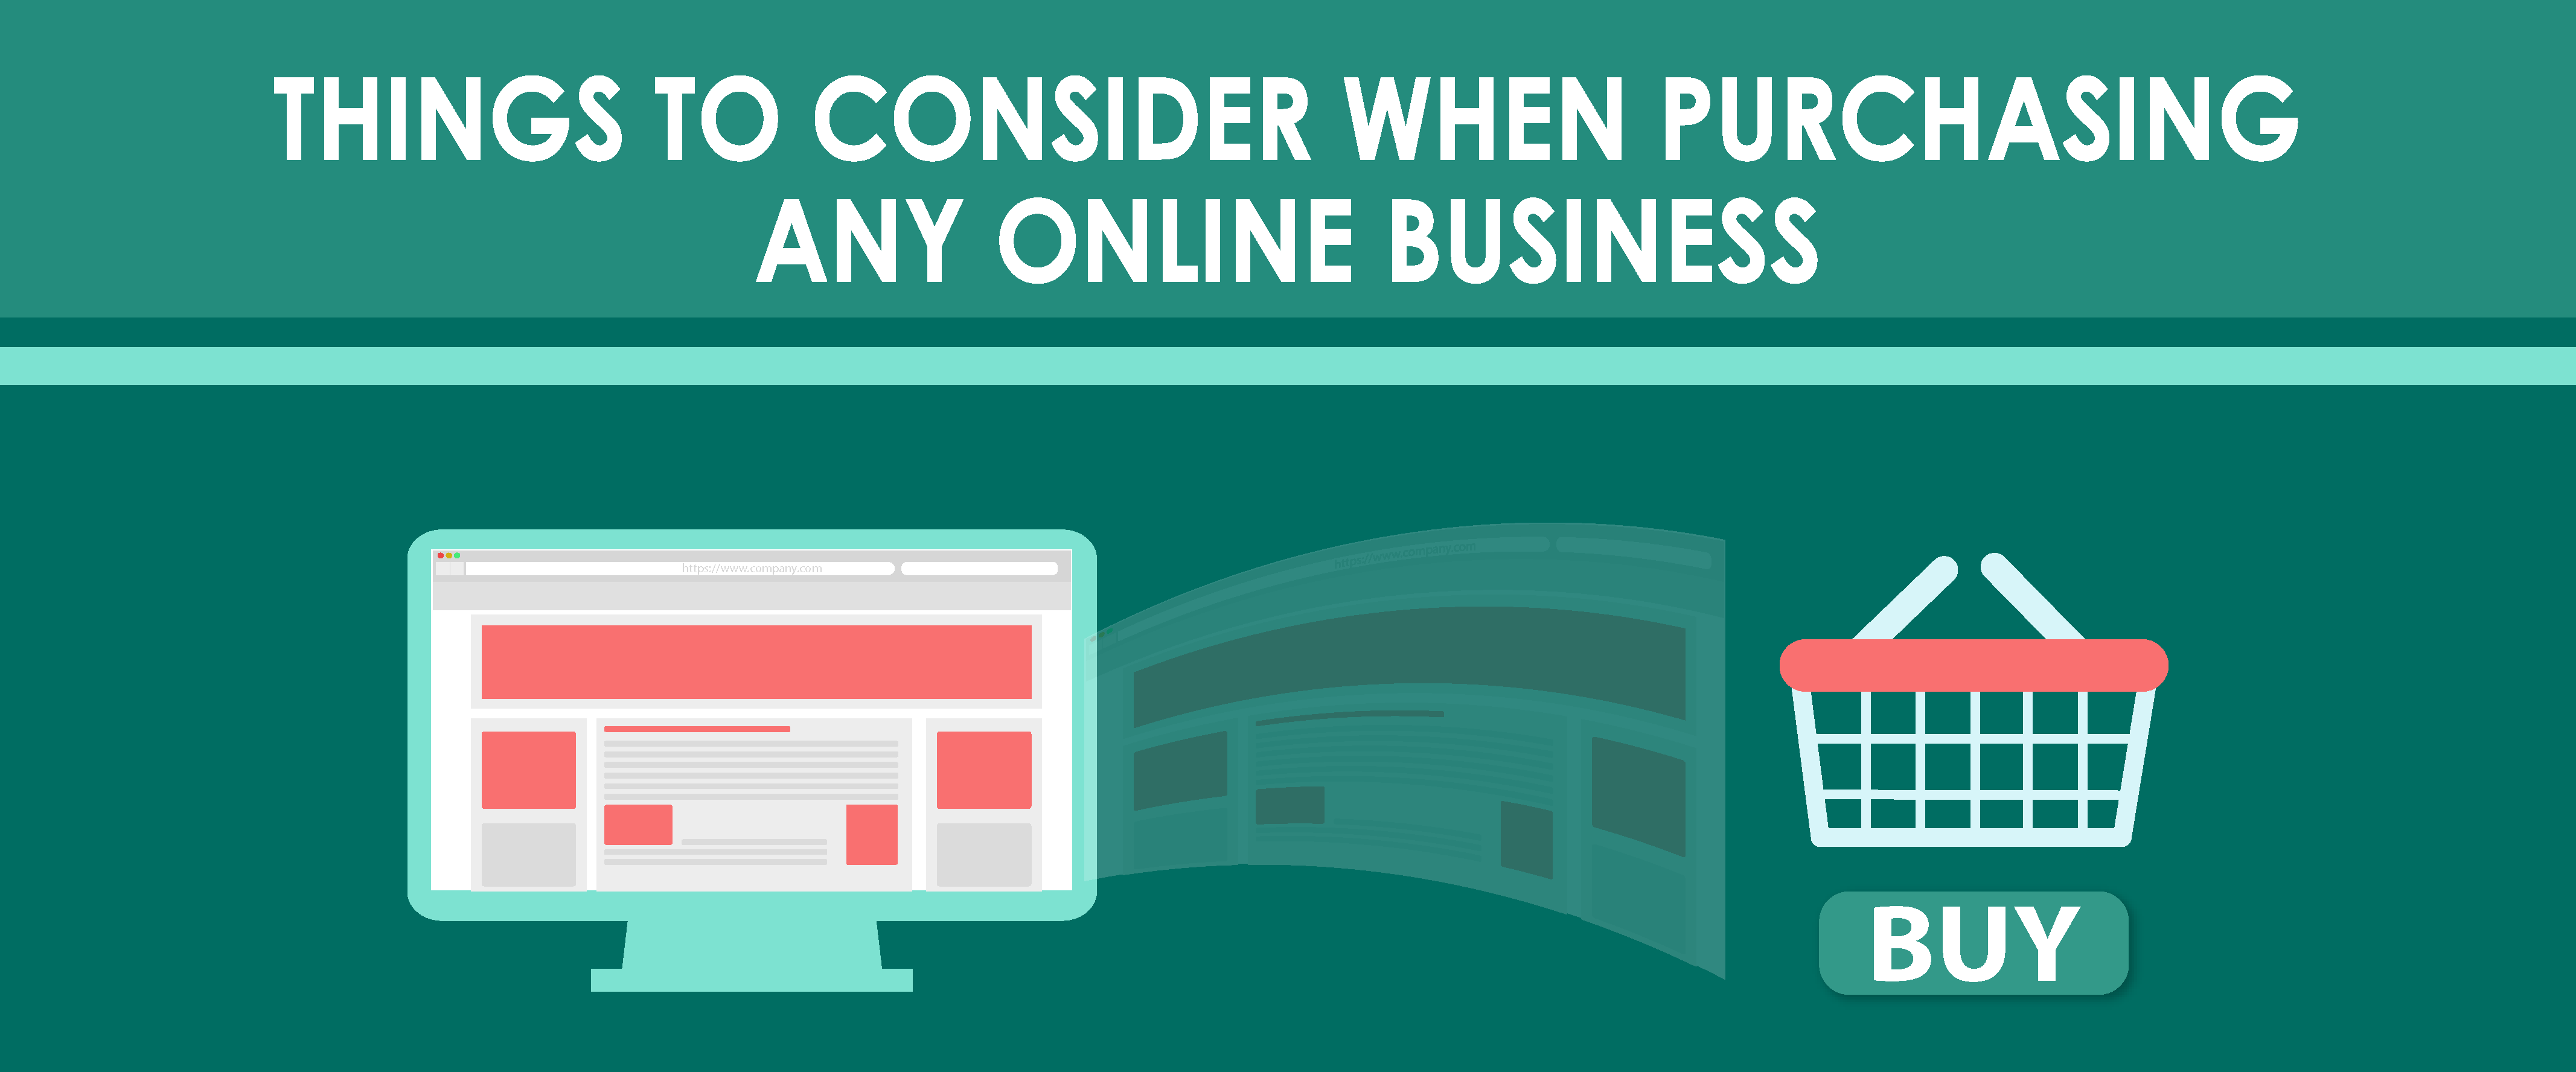 Things to Consider when Purchasing any Online Business